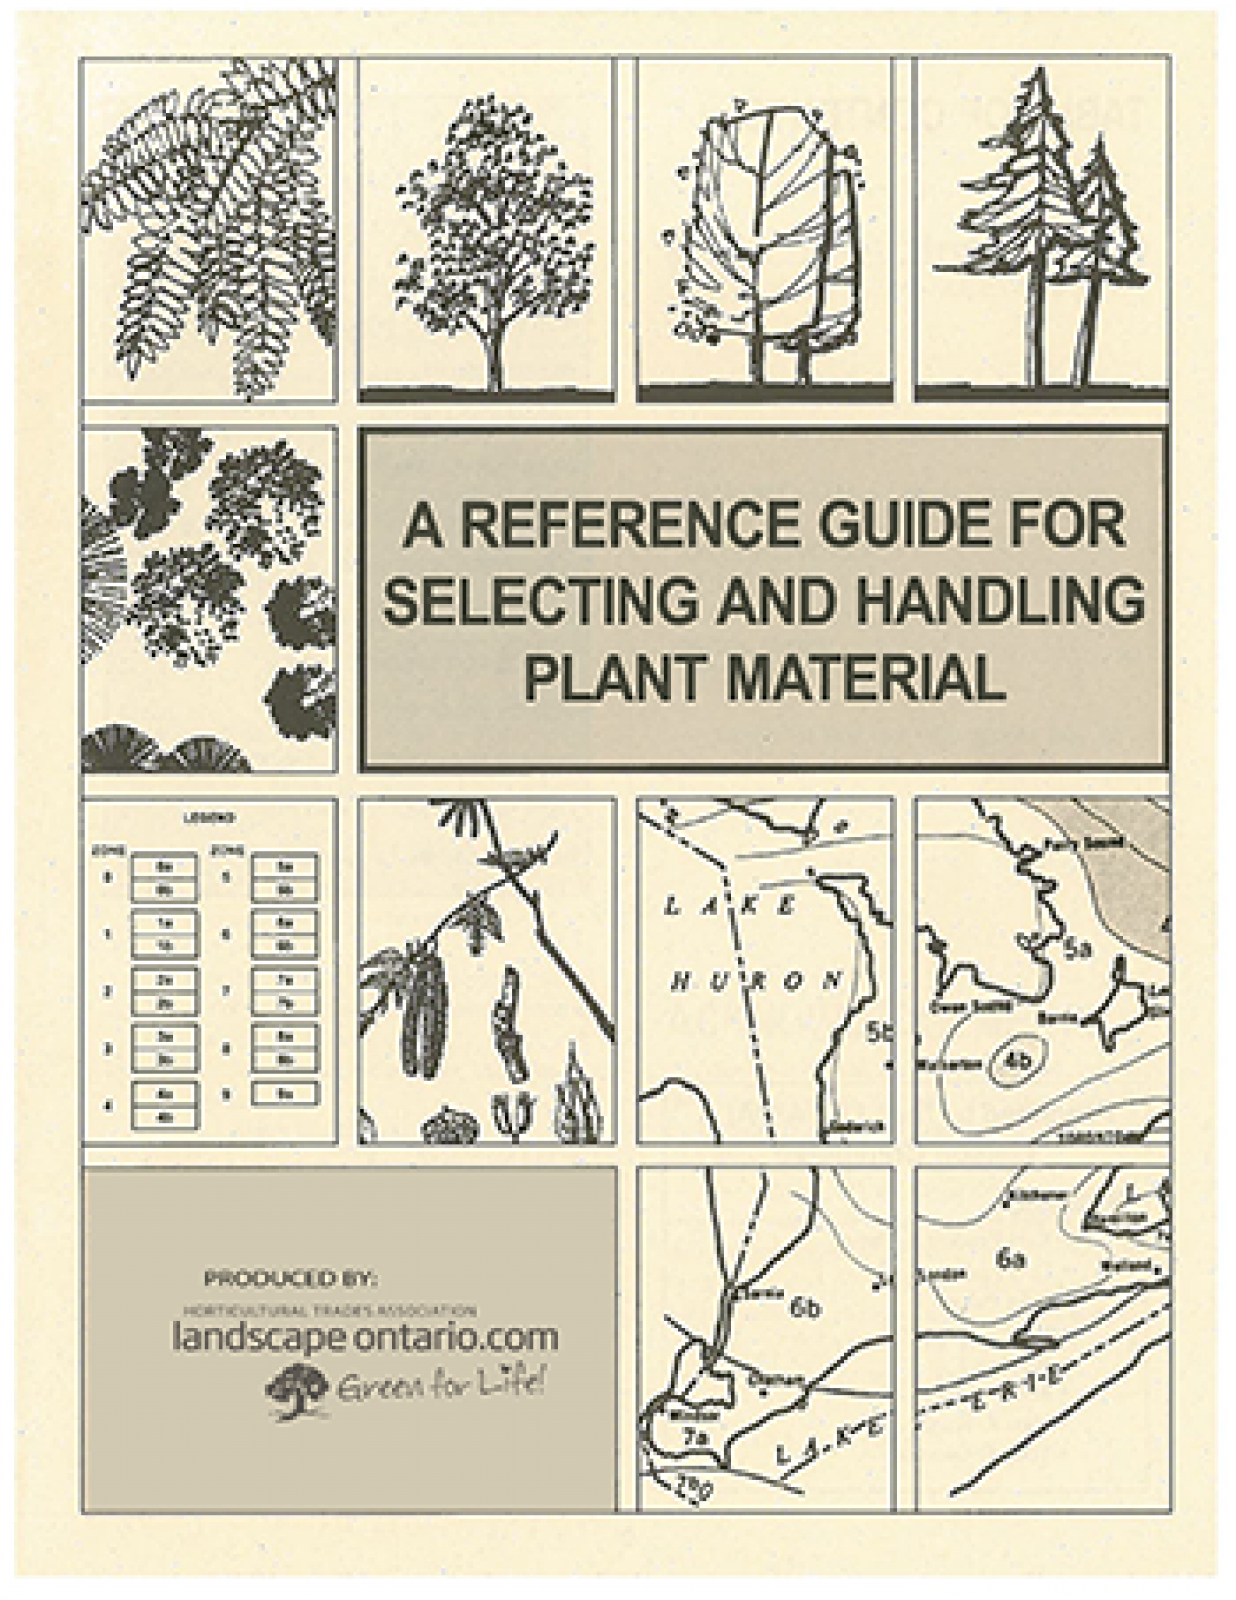 A Reference Guide for Selecting and Handling Plant Material-1